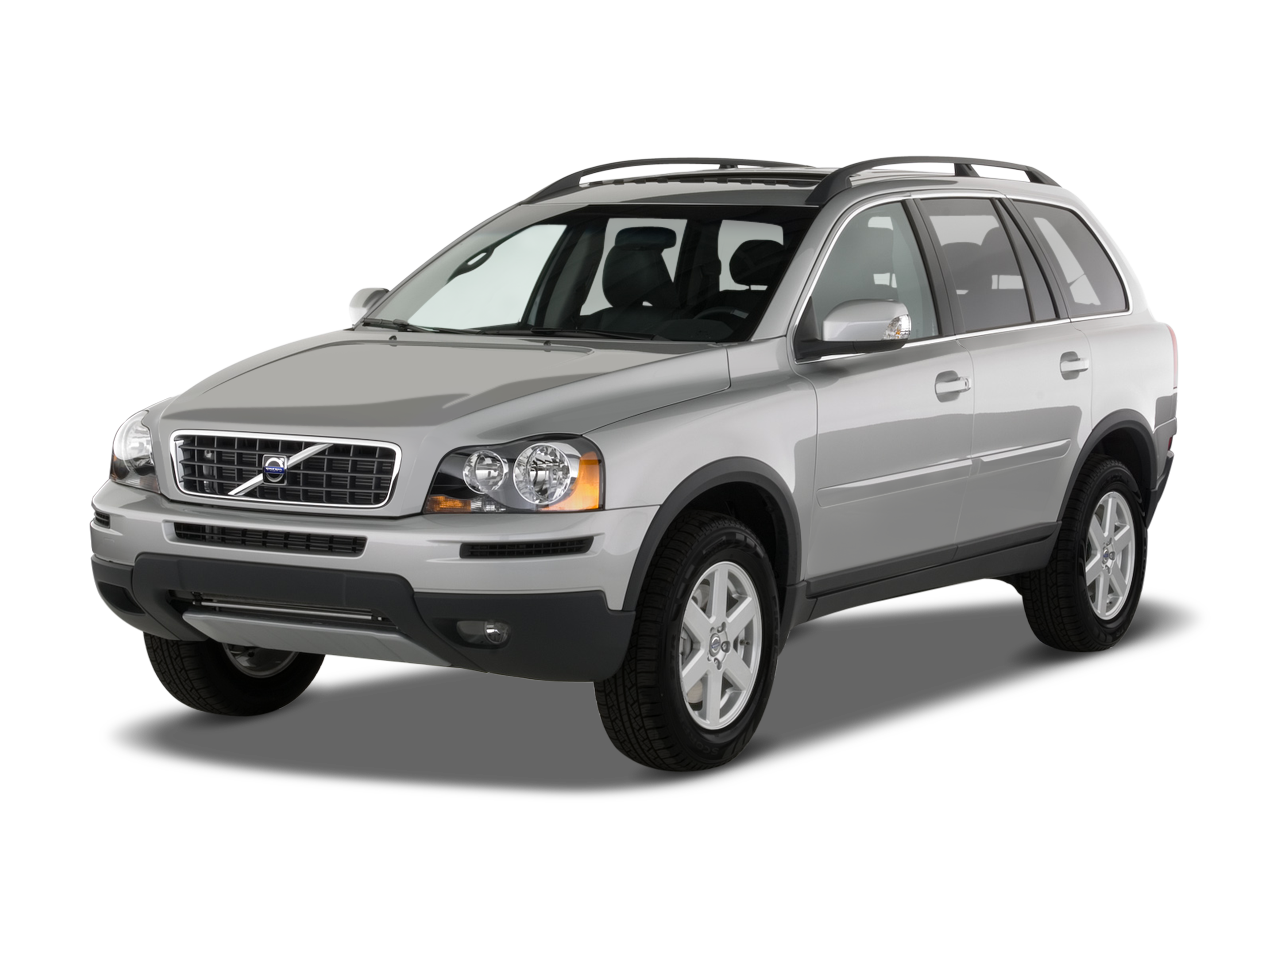 2009 volvo xc90 awd volvo crossover suv review. Black Bedroom Furniture Sets. Home Design Ideas